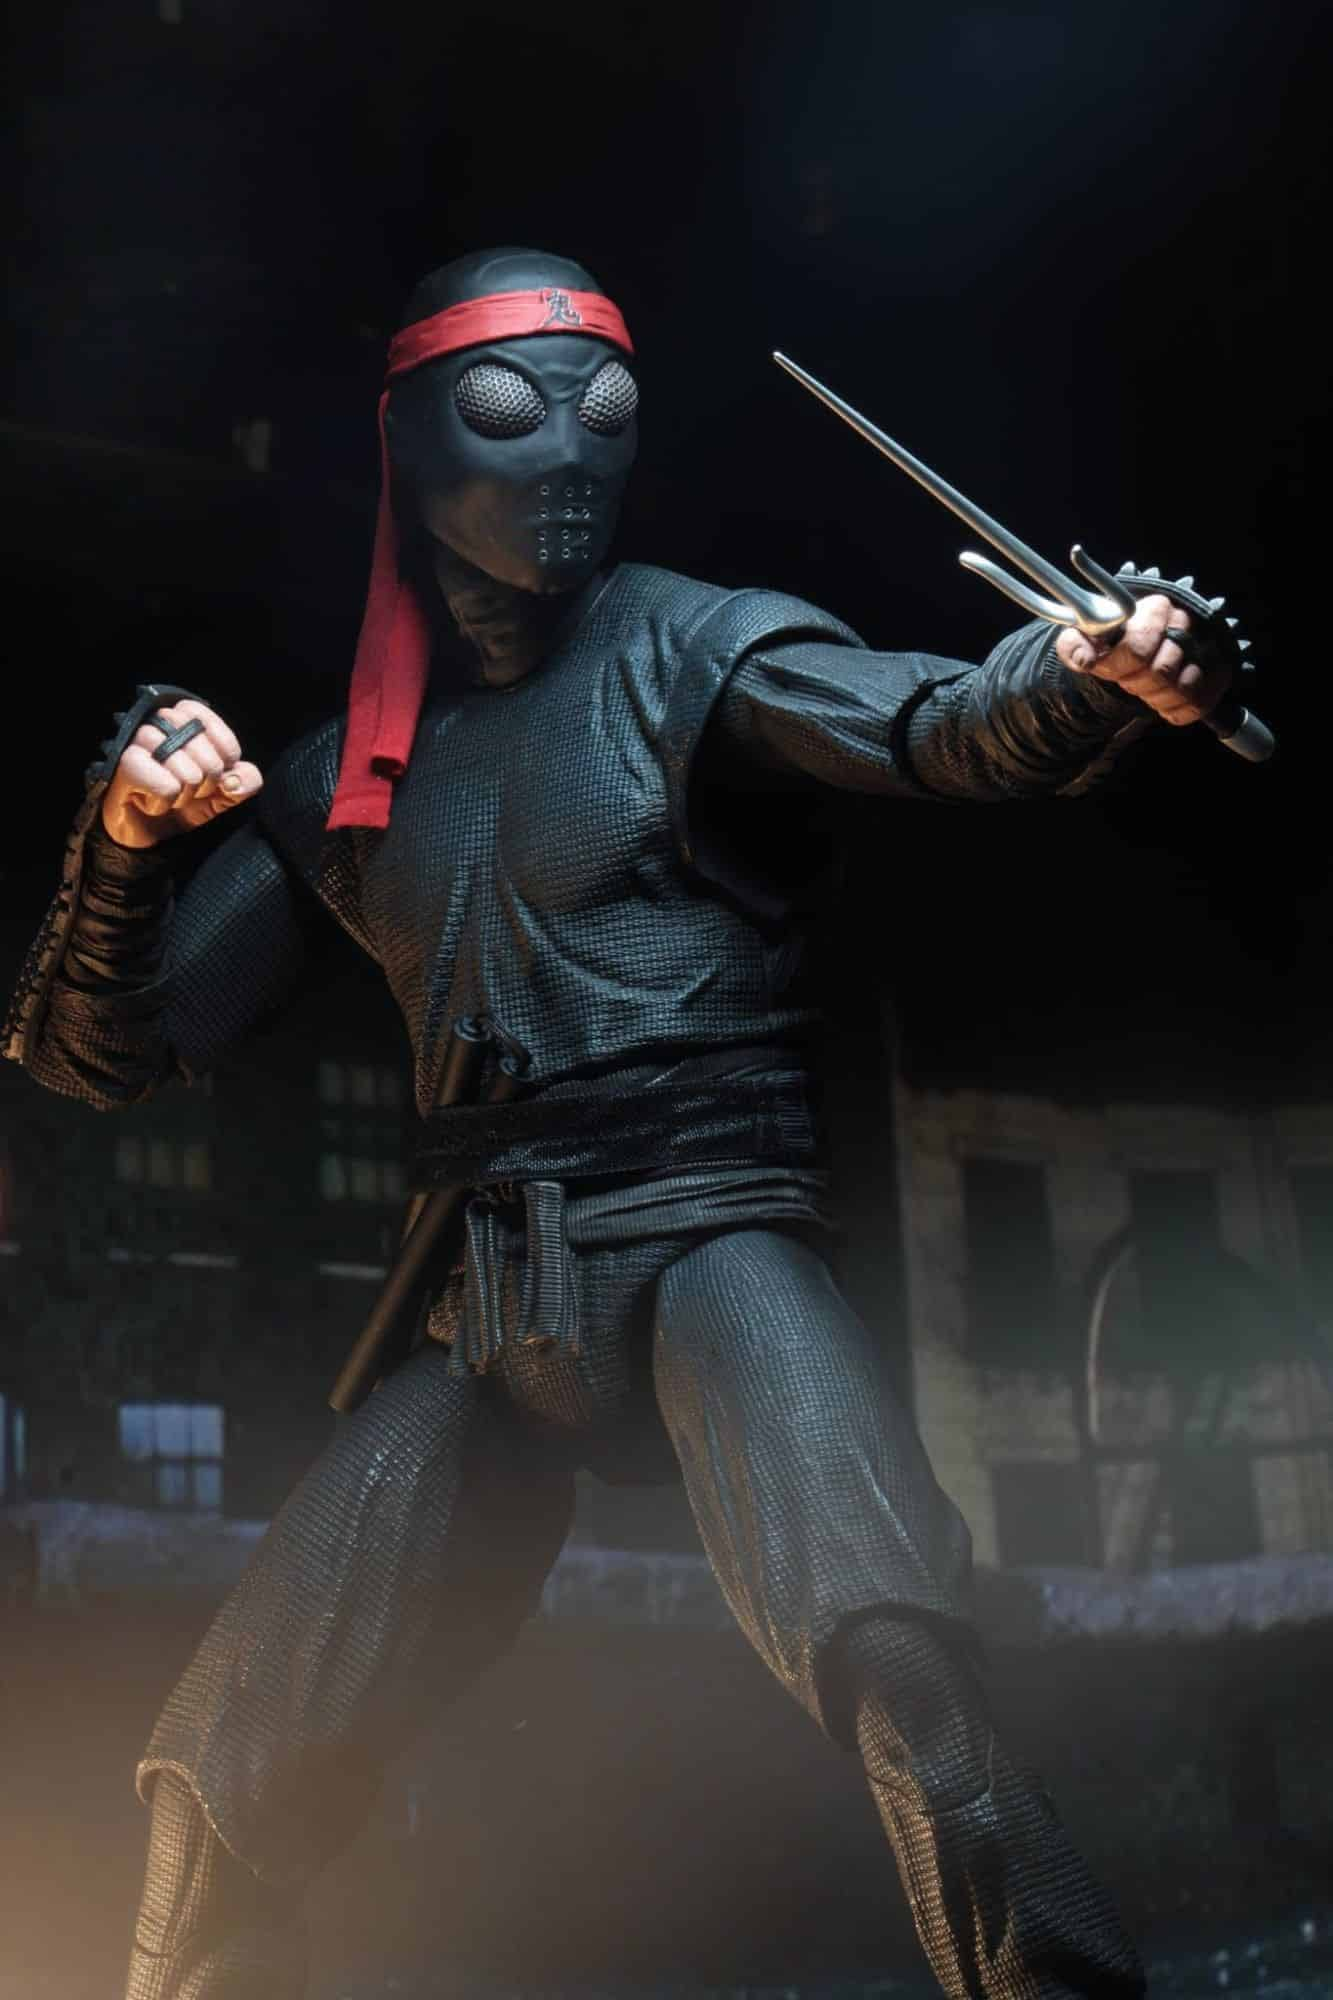 NECA 1:4 Scale TMNT Foot Soldier 6